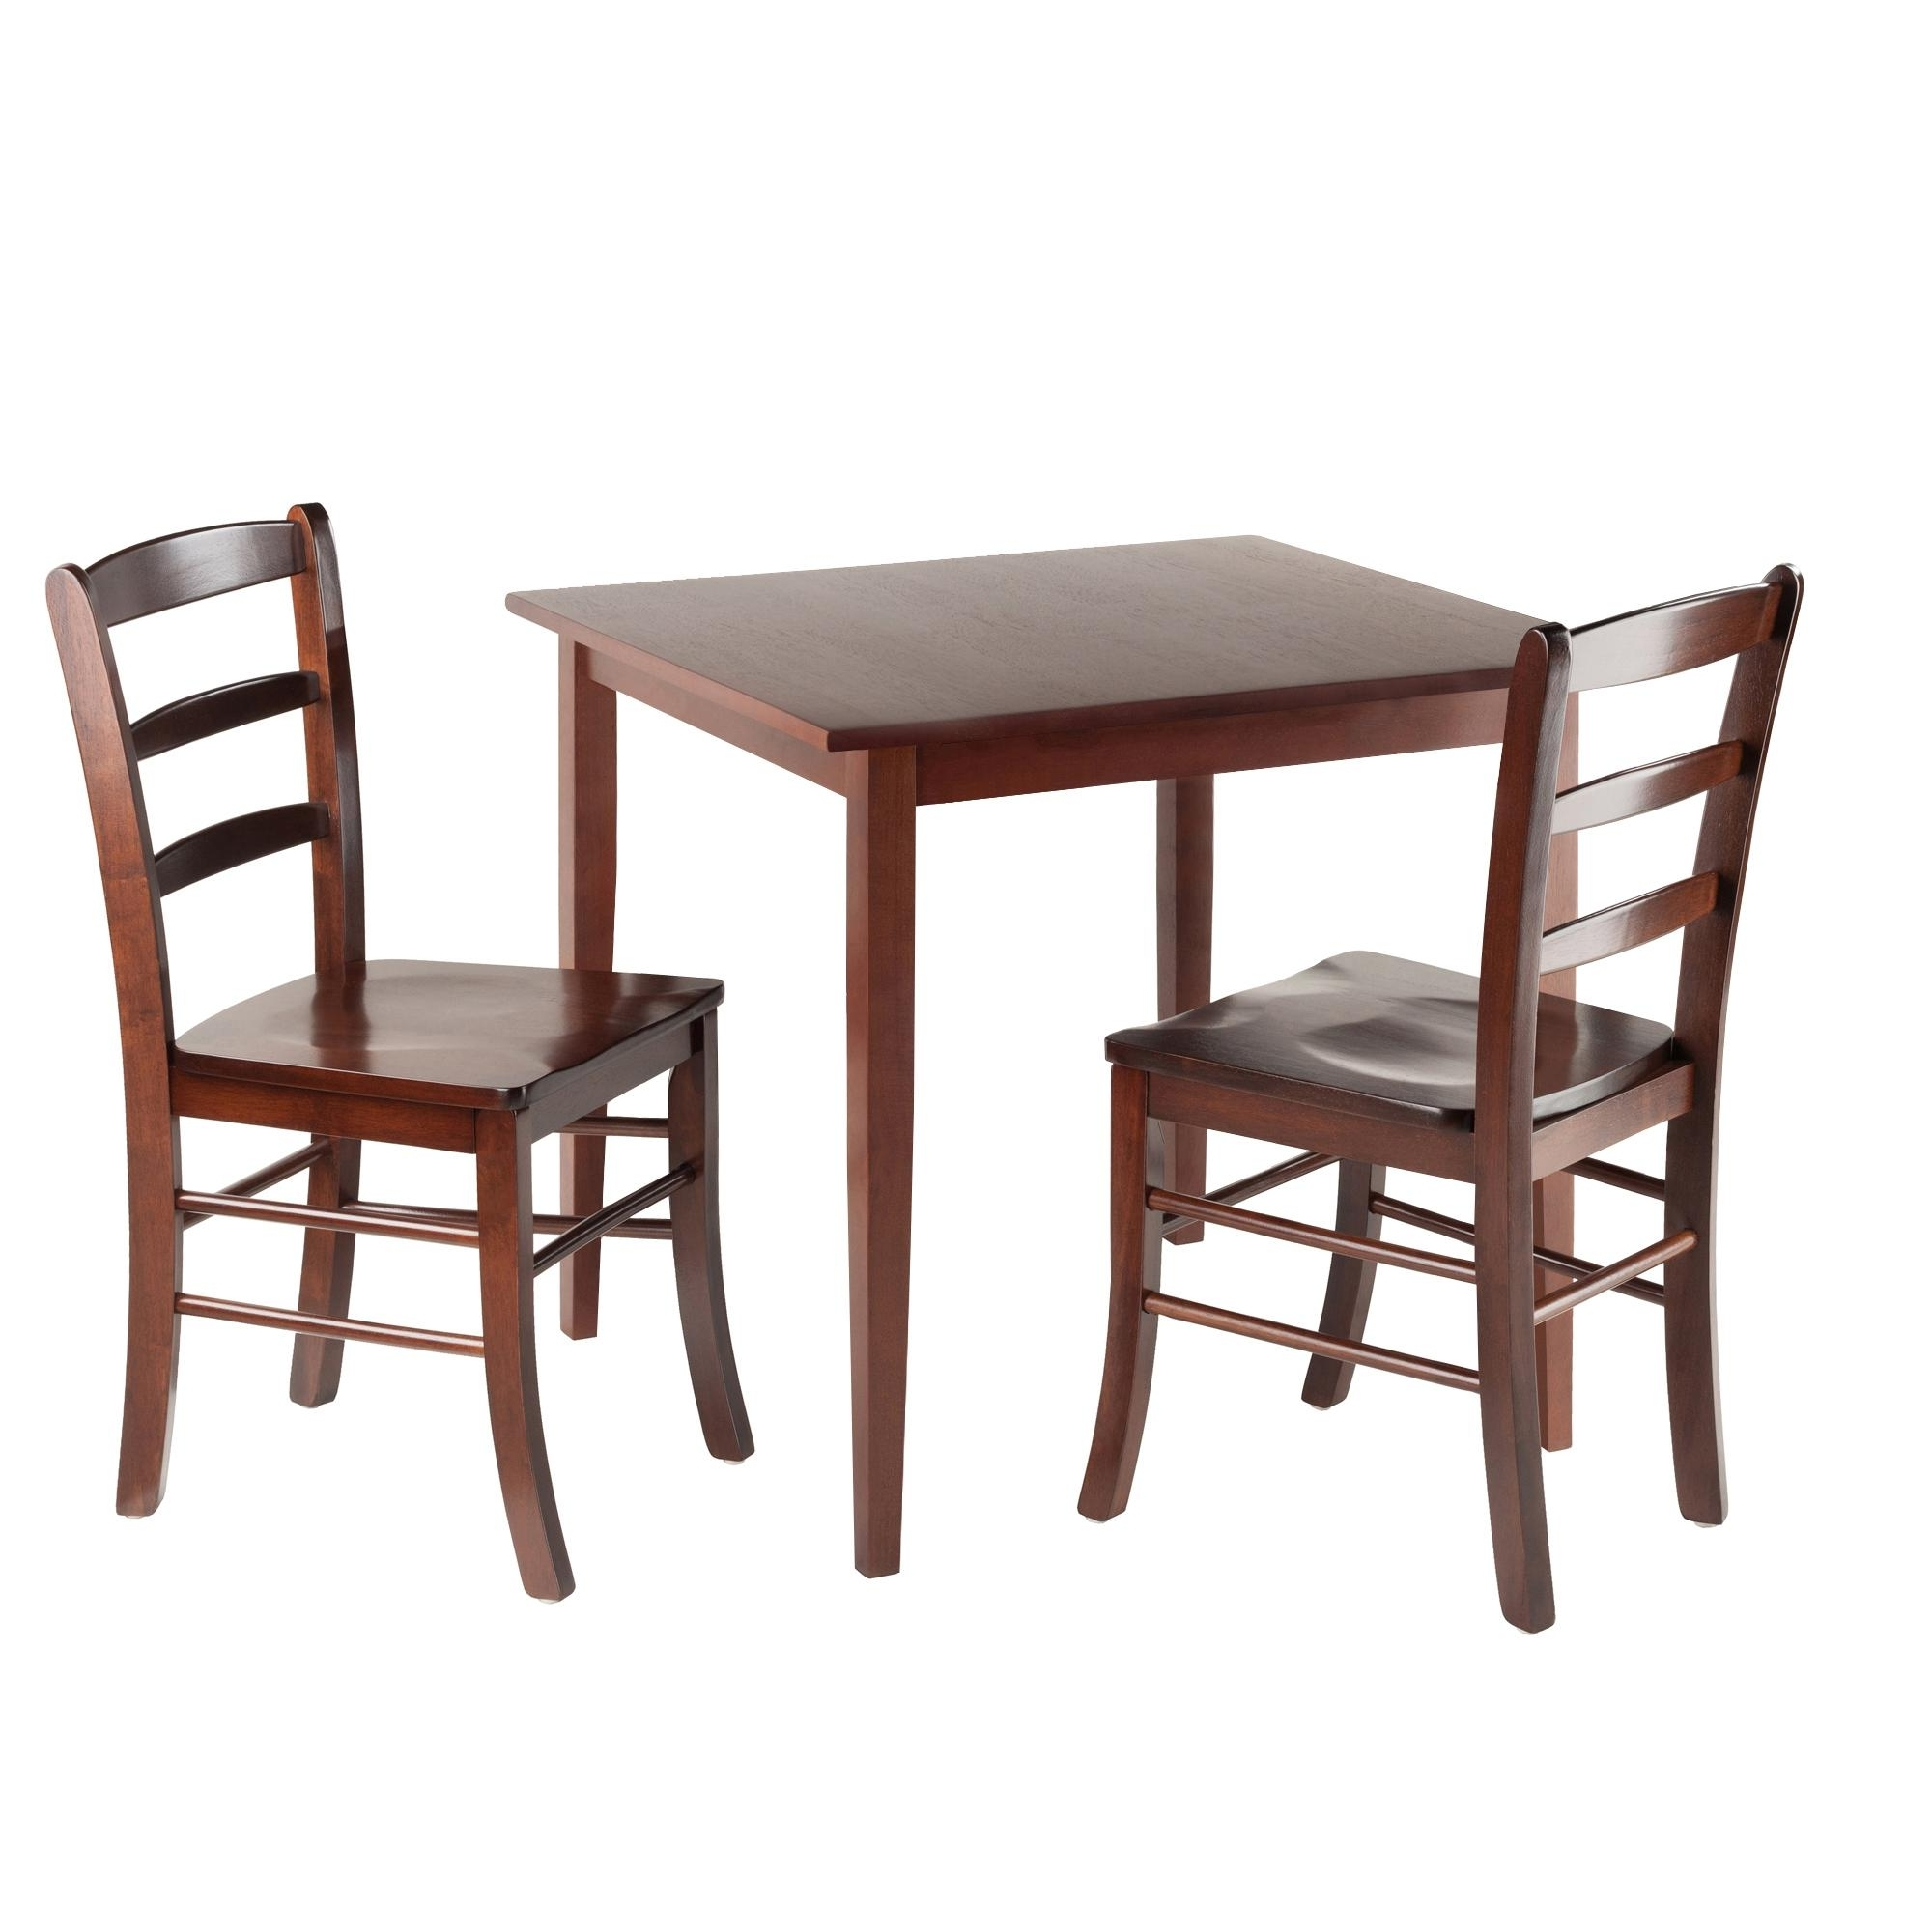 Well Known Modern Dining Table And Chairs With Regard To Amazon – Winsome Groveland Square Dining Table With 2 Chairs,  (View 24 of 25)